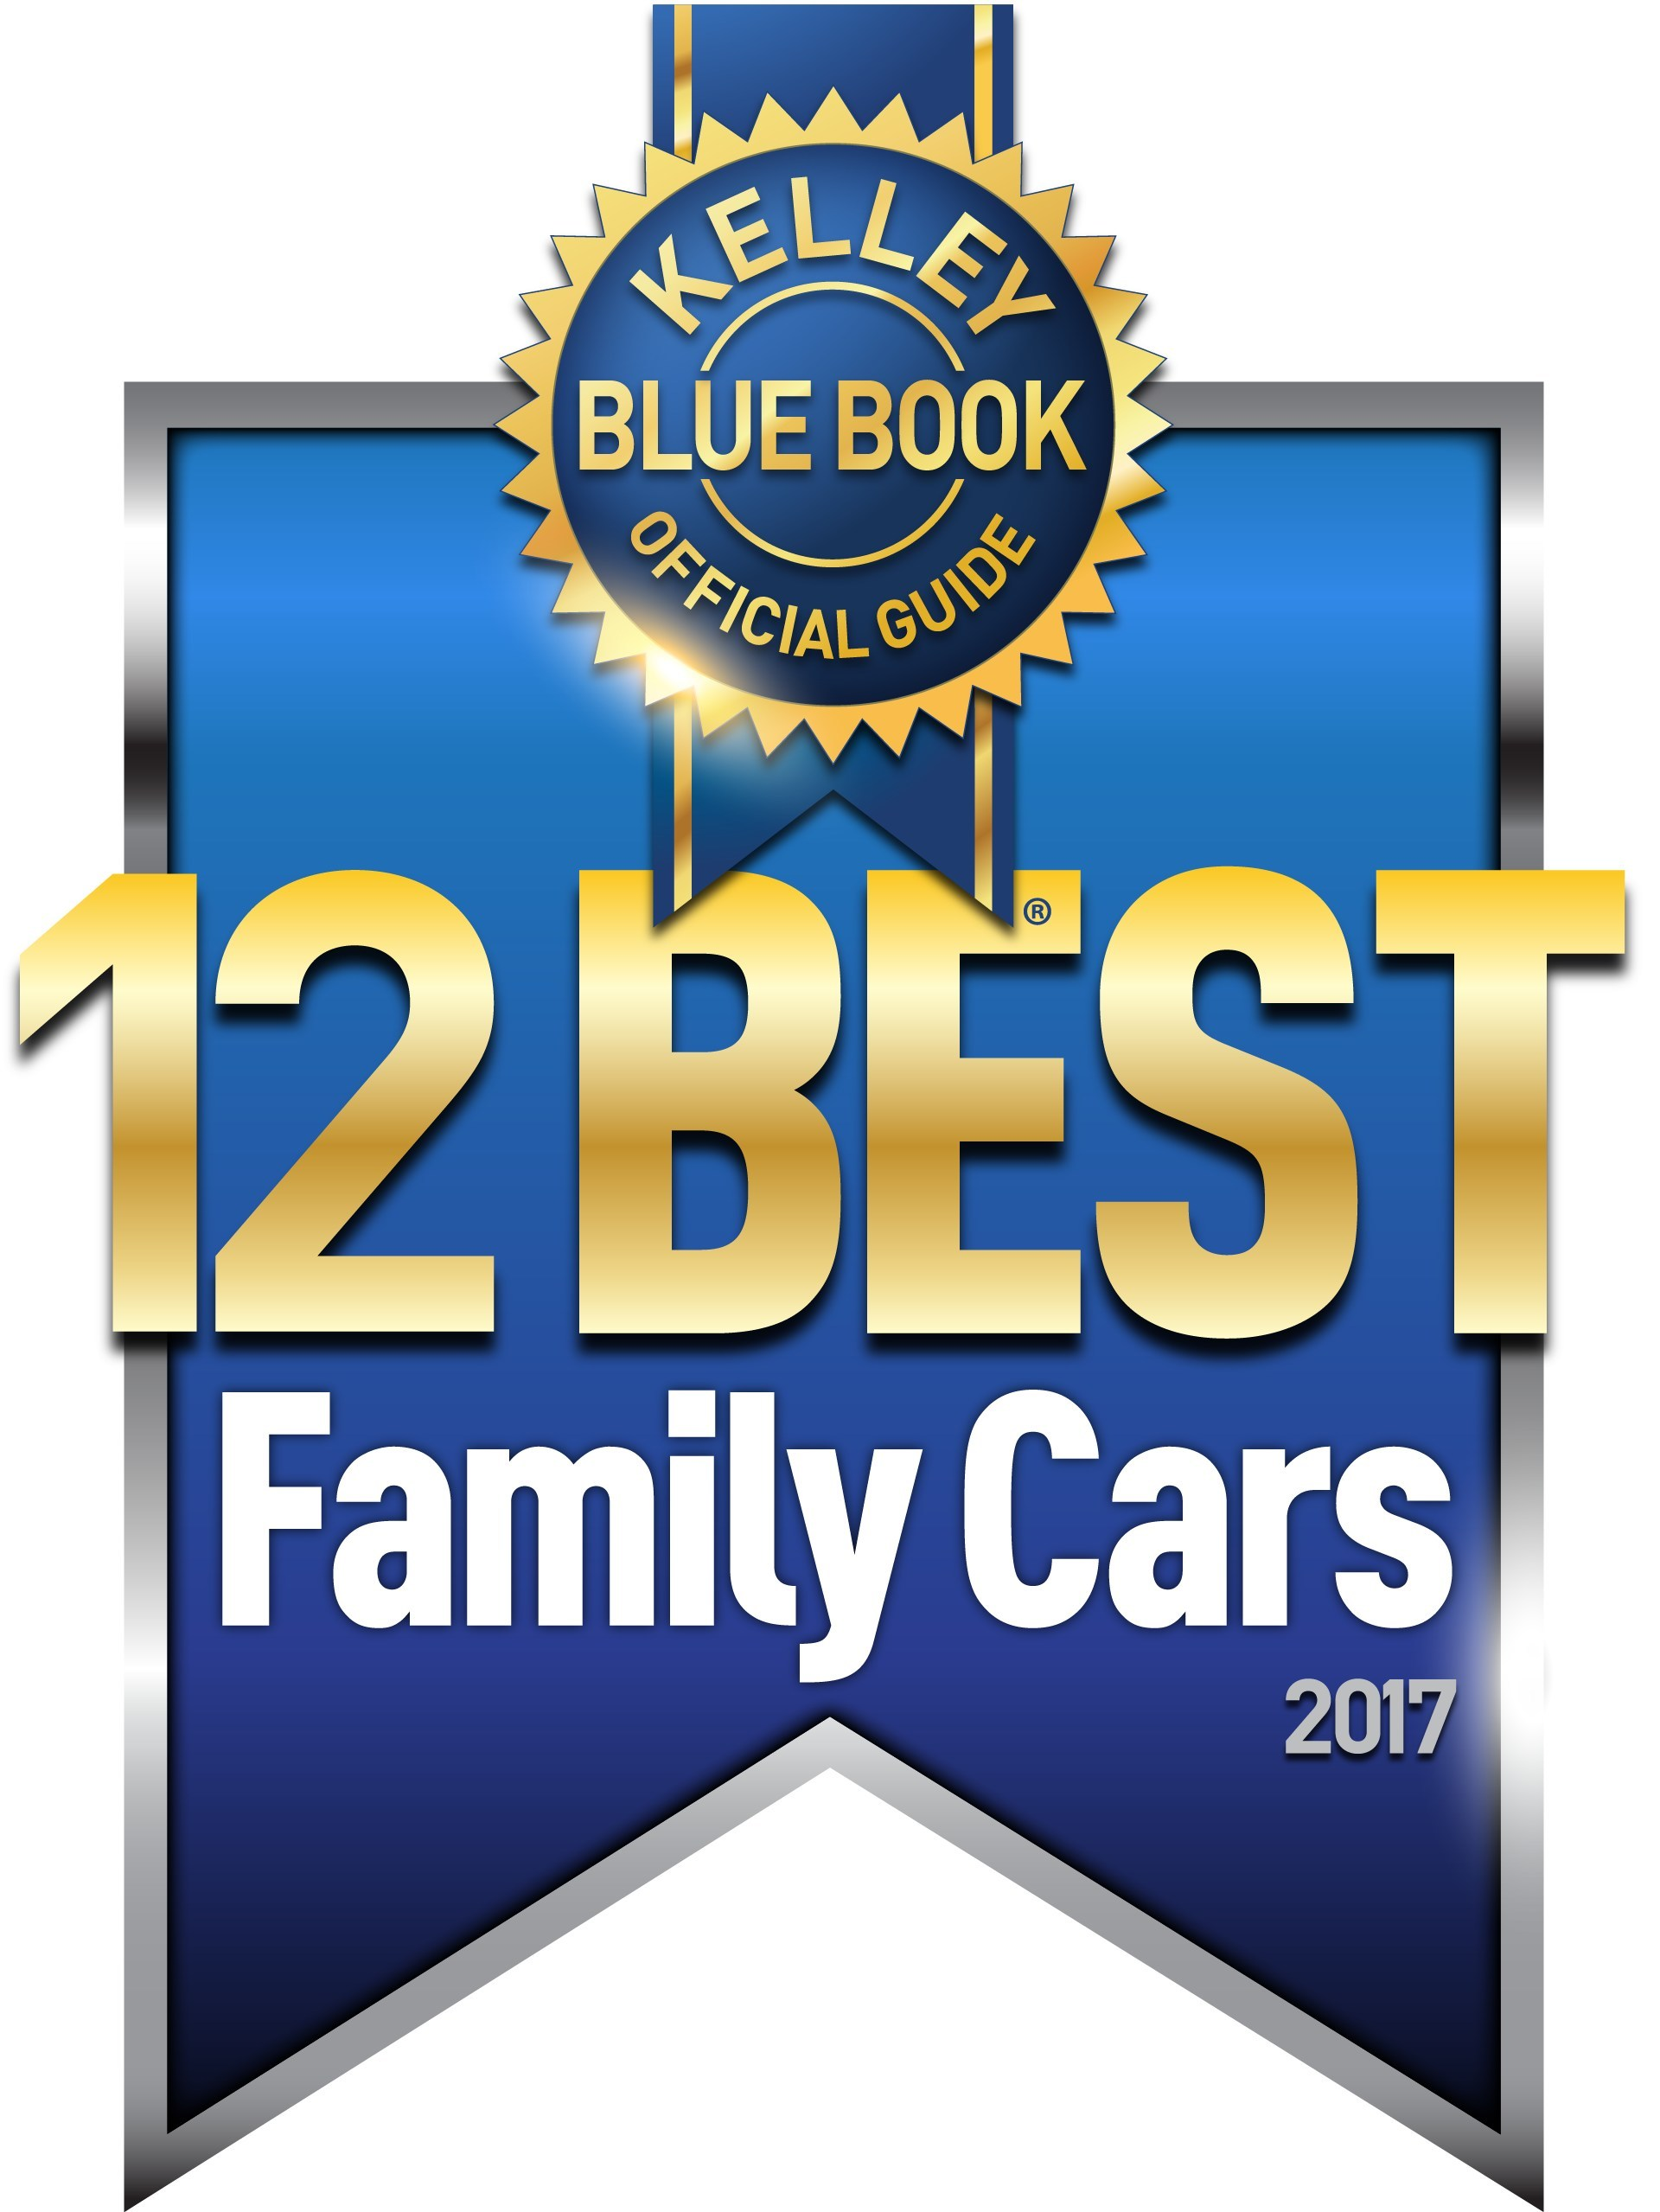 Kelley Blue Book Names Best Family Cars Of 2017